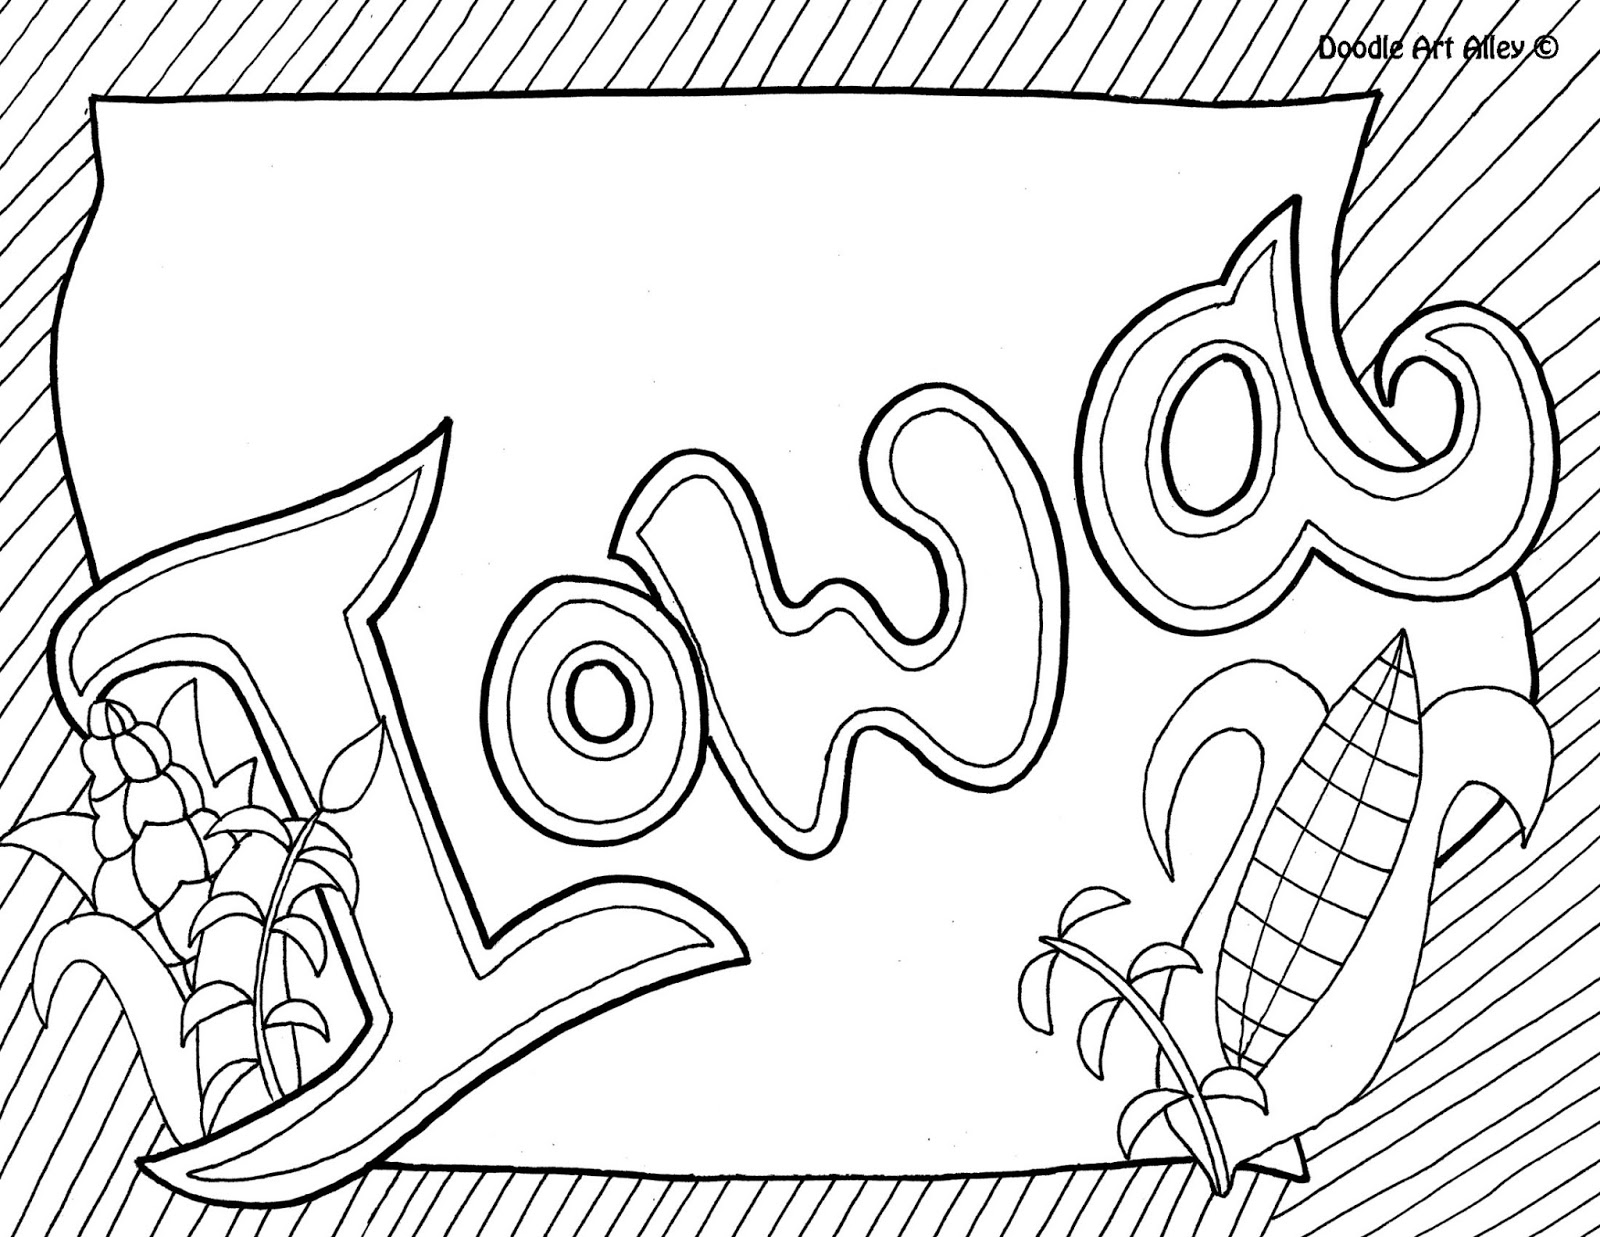 iowa coloring pages - photo#3